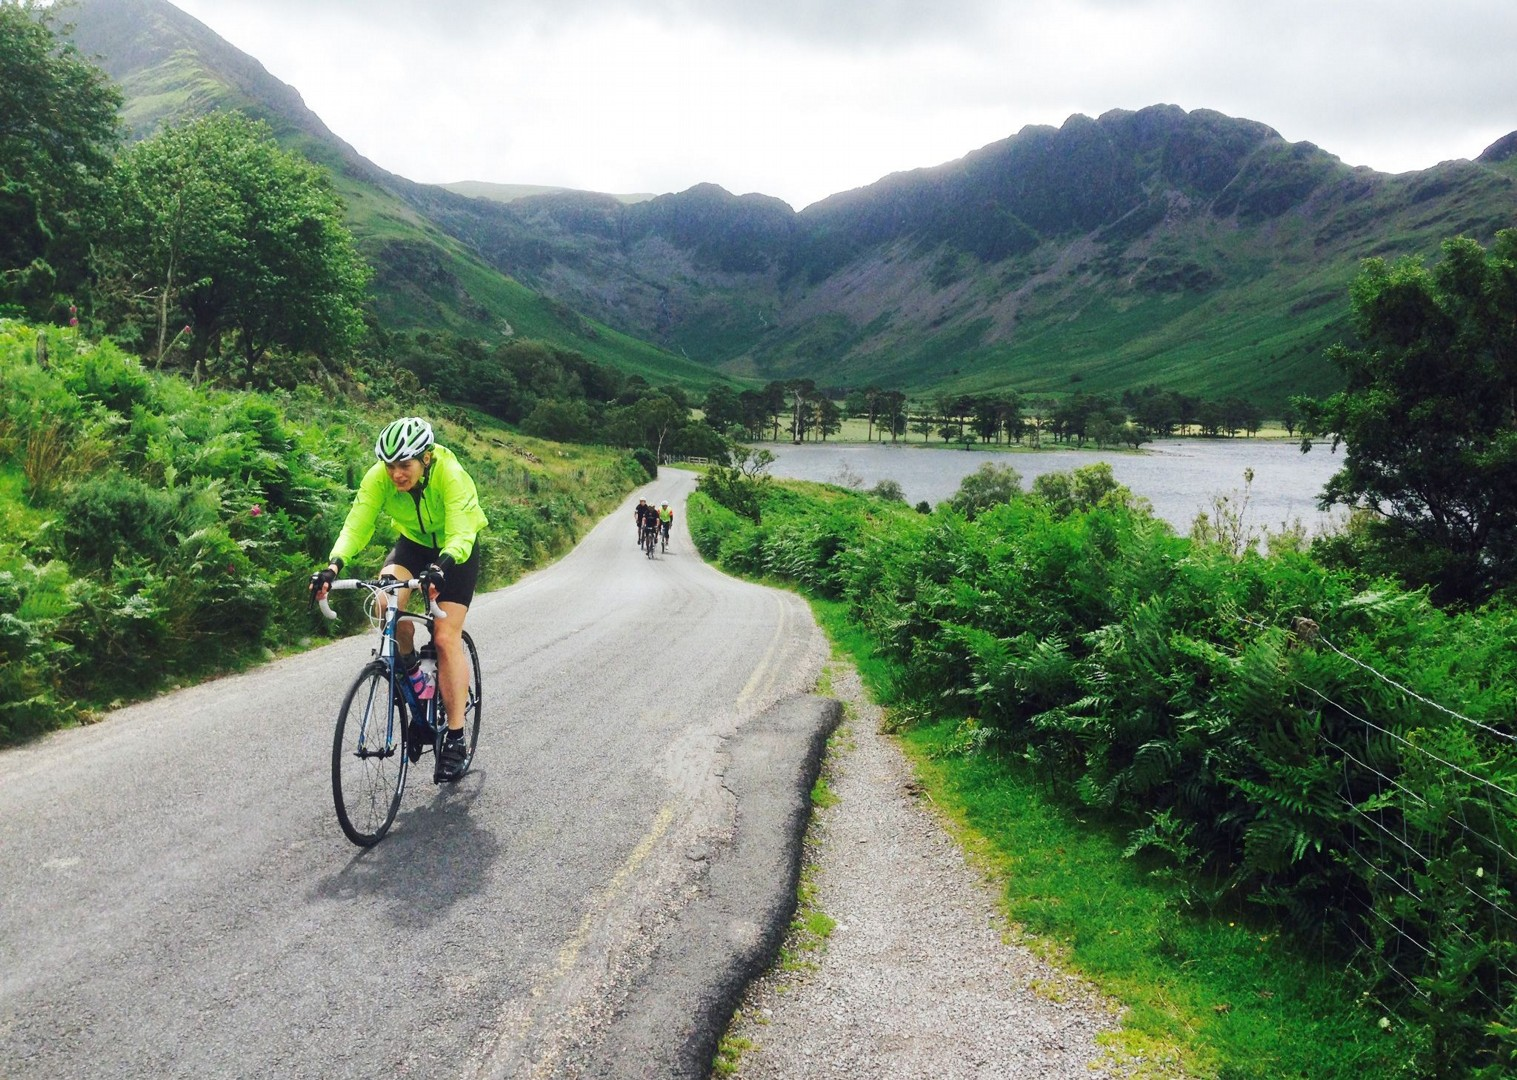 lakelakedistrict.jpg - UK - Lake District Classic Passes - Guided Road Cycling Weekend - Road Cycling